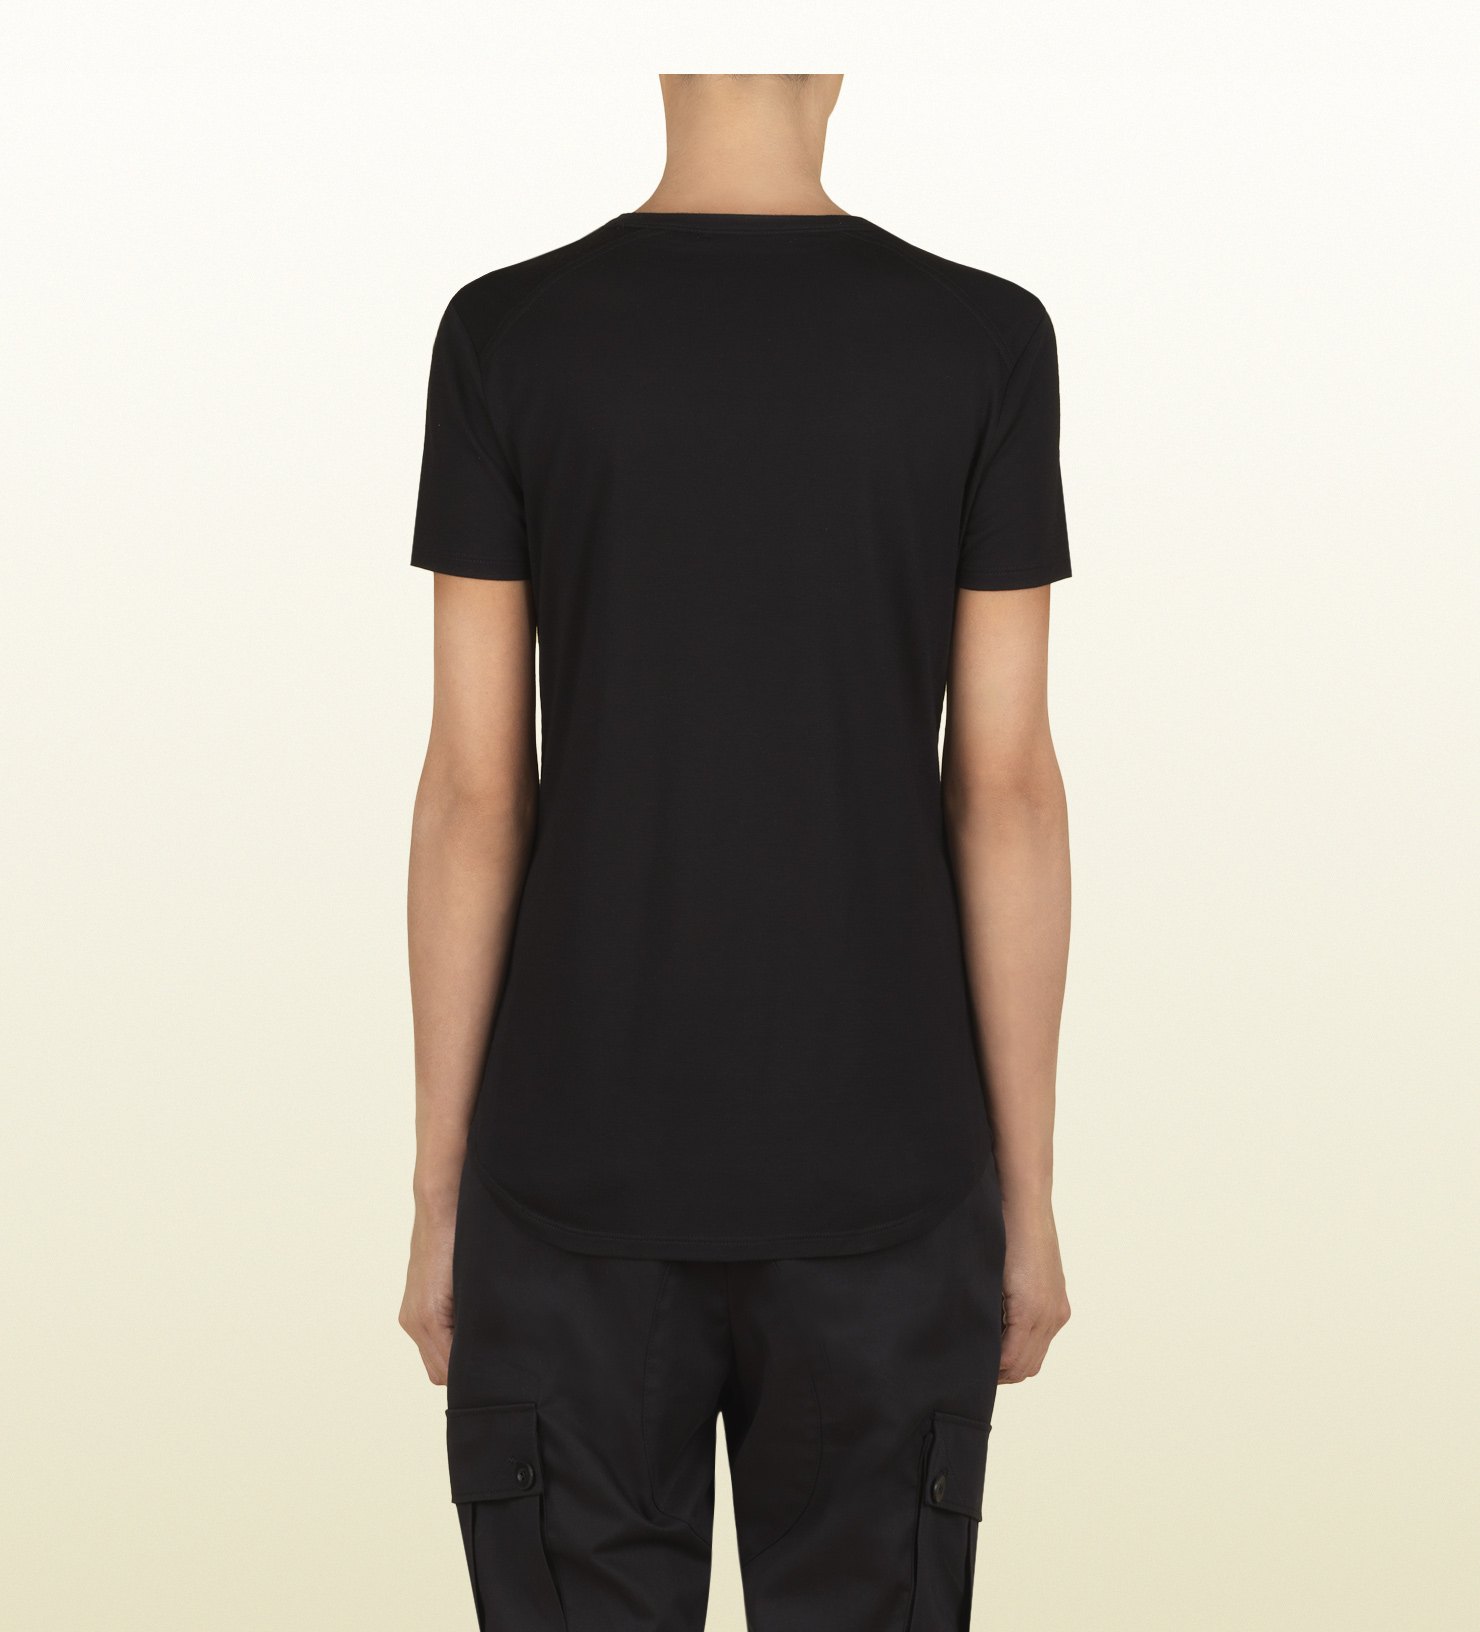 55483cf35 Gucci Women's Black Short Sleeve T-shirt From Viaggio Collection in ...